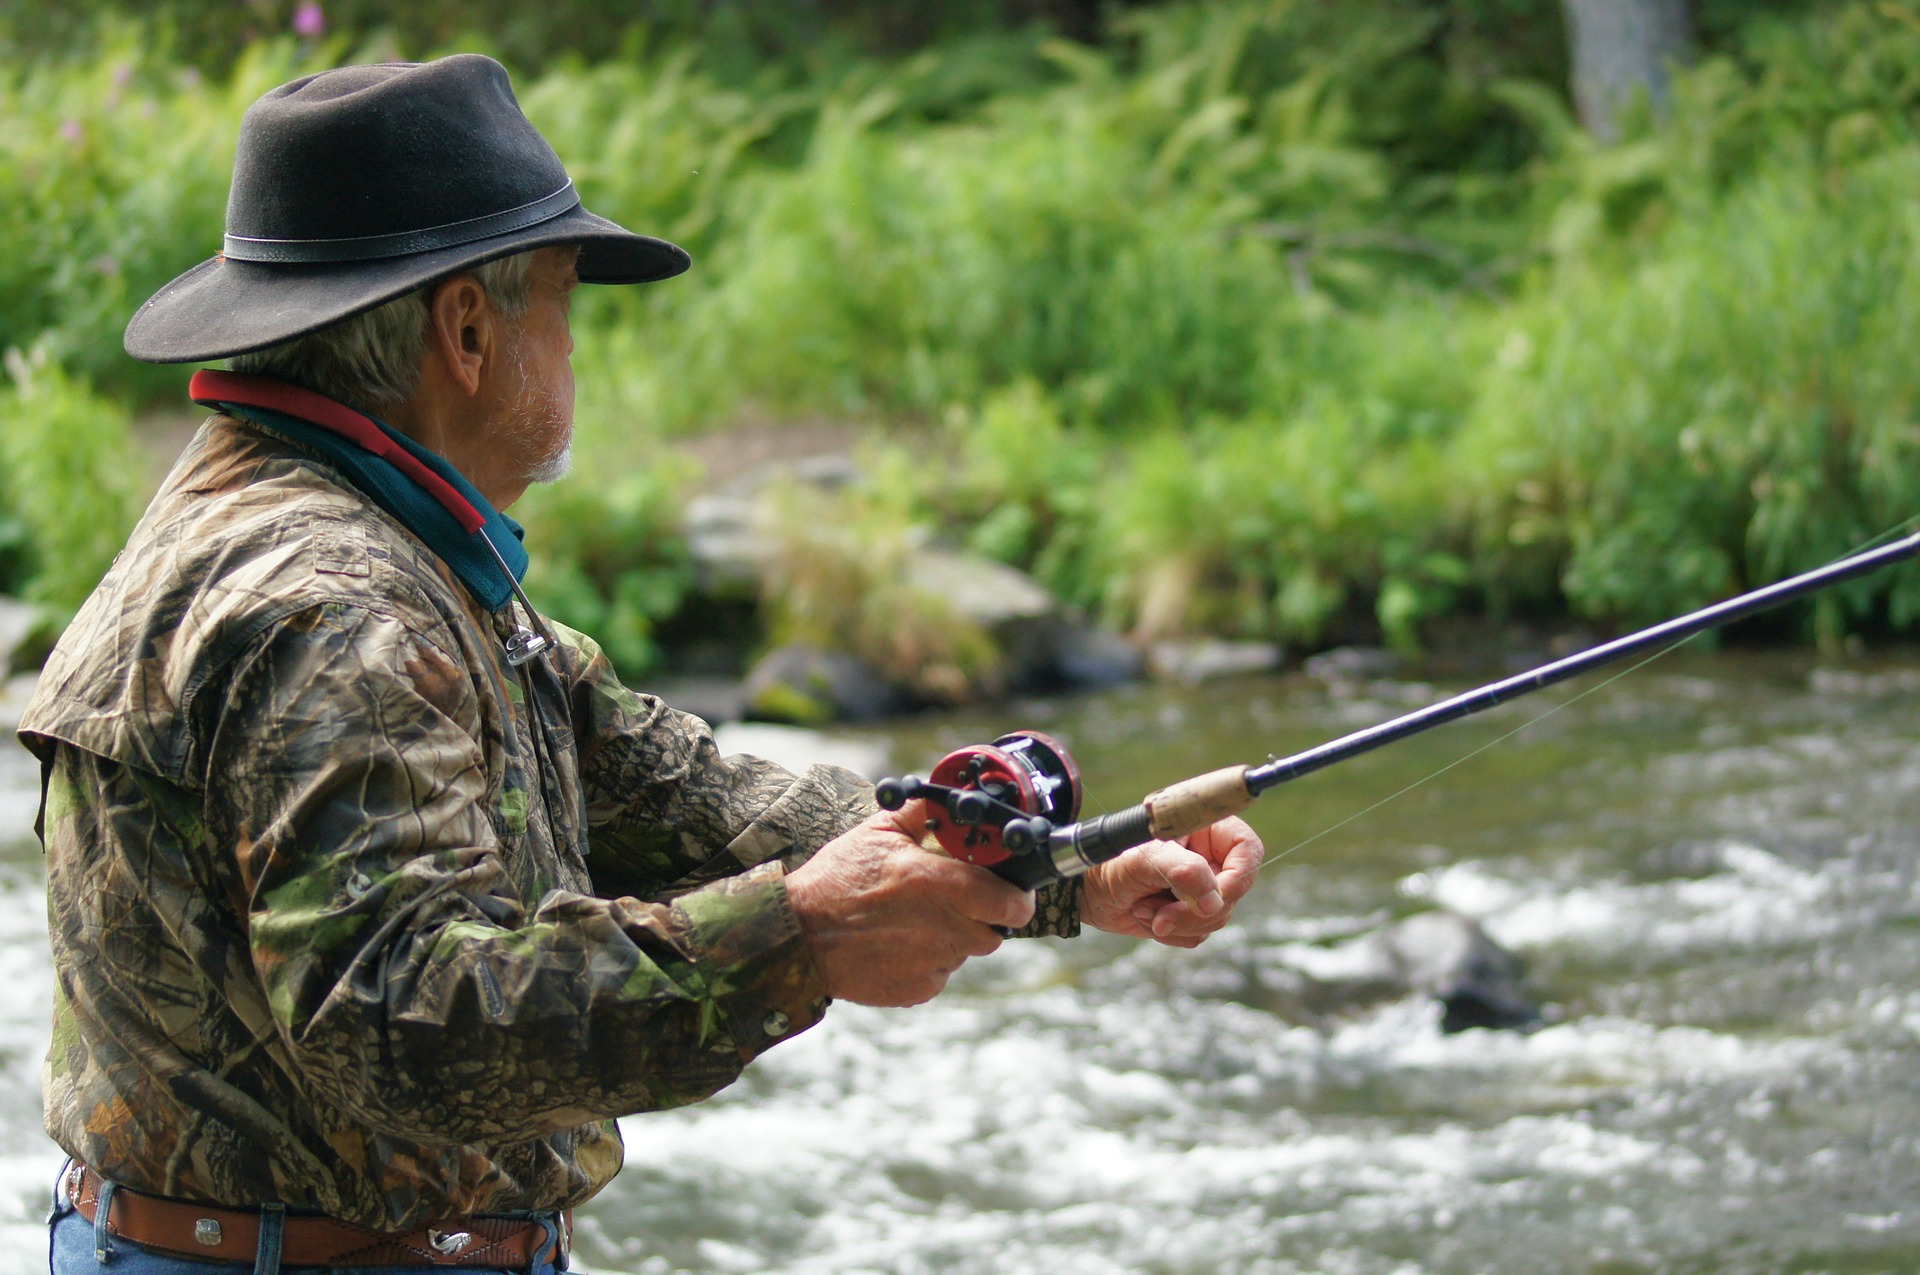 Tips To Keep You Catching Fish During Your Fly Fishing Travels